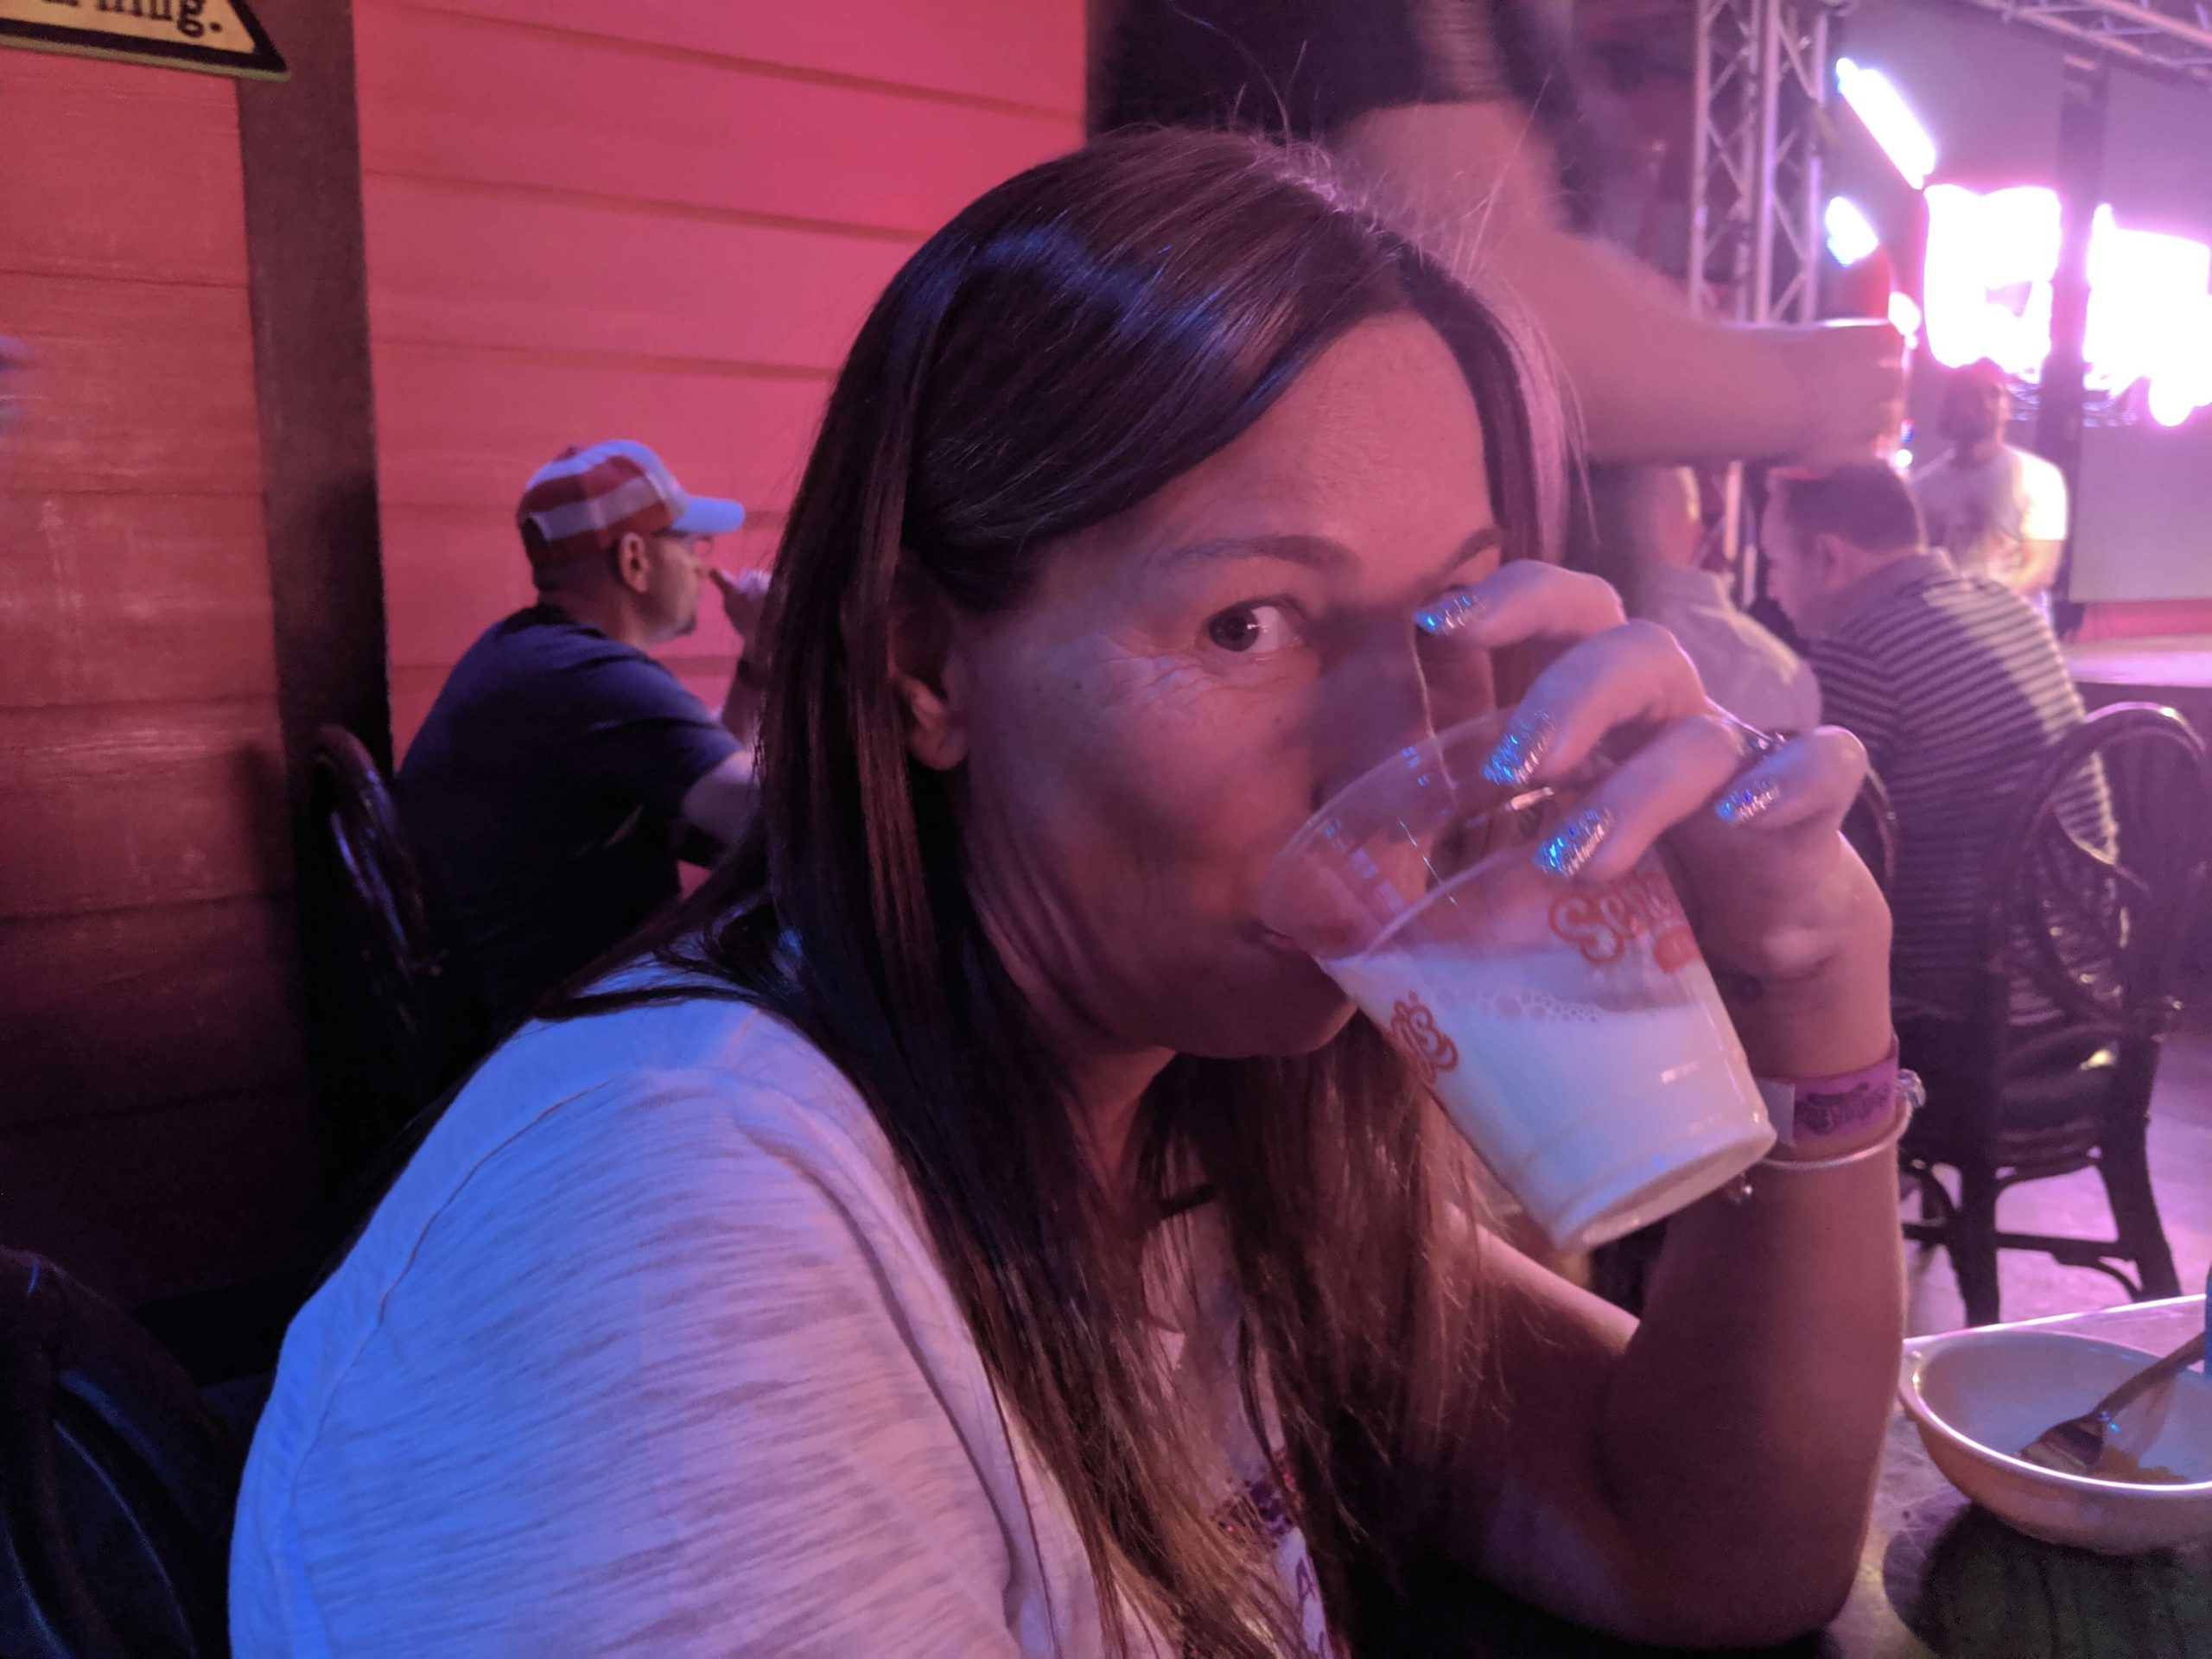 Mummy curious enjoying the non alcoholic beverages available at the Drag Queen Brunch, Las Vegas